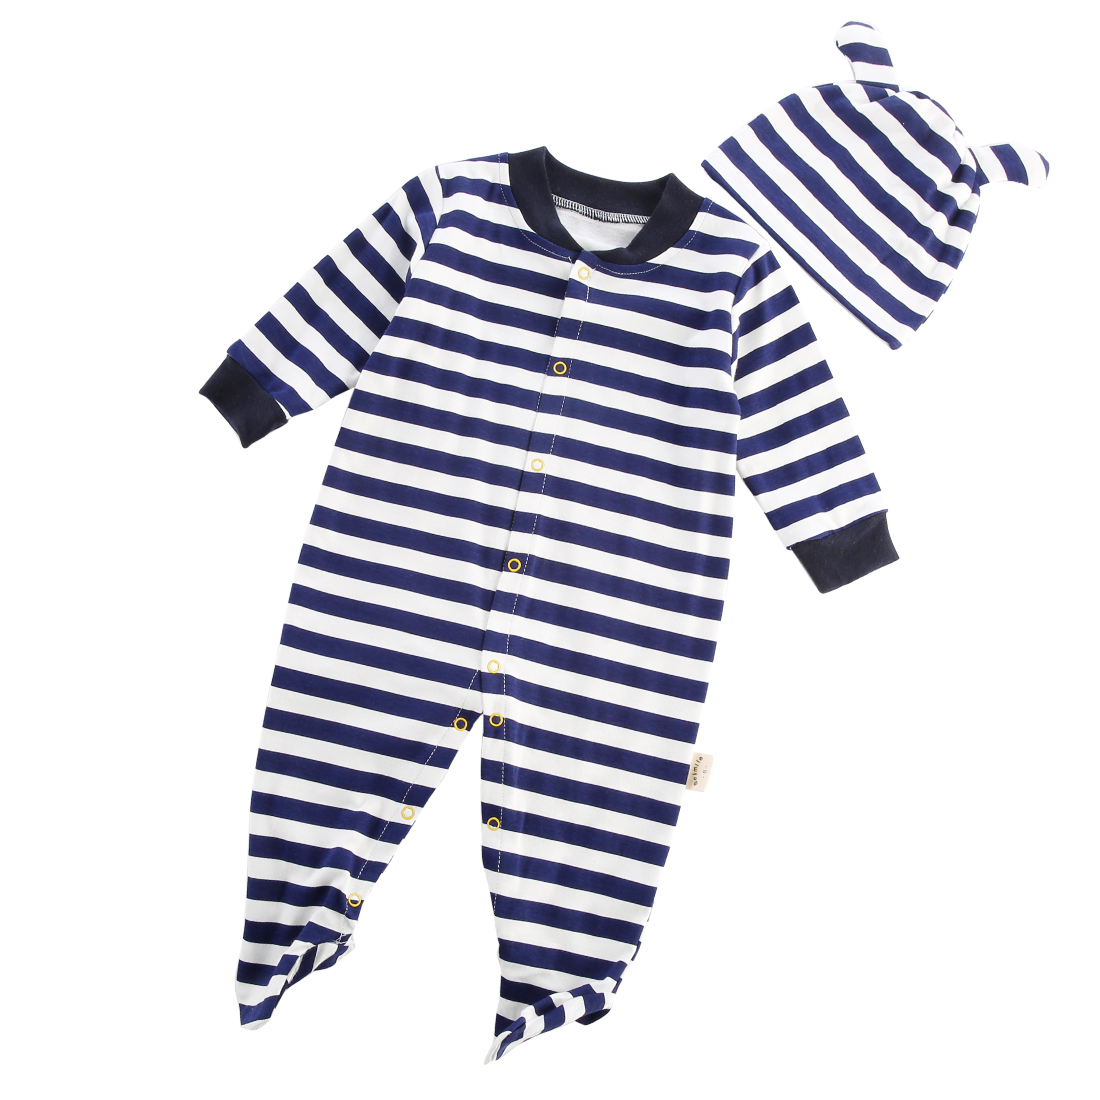 Casual Infant Autumn Winter Clothes Baby Boys Girls Cotton Hooded Romper Unisex Solid Long Sleeves Button Jumpsuit 0-24m Rompers